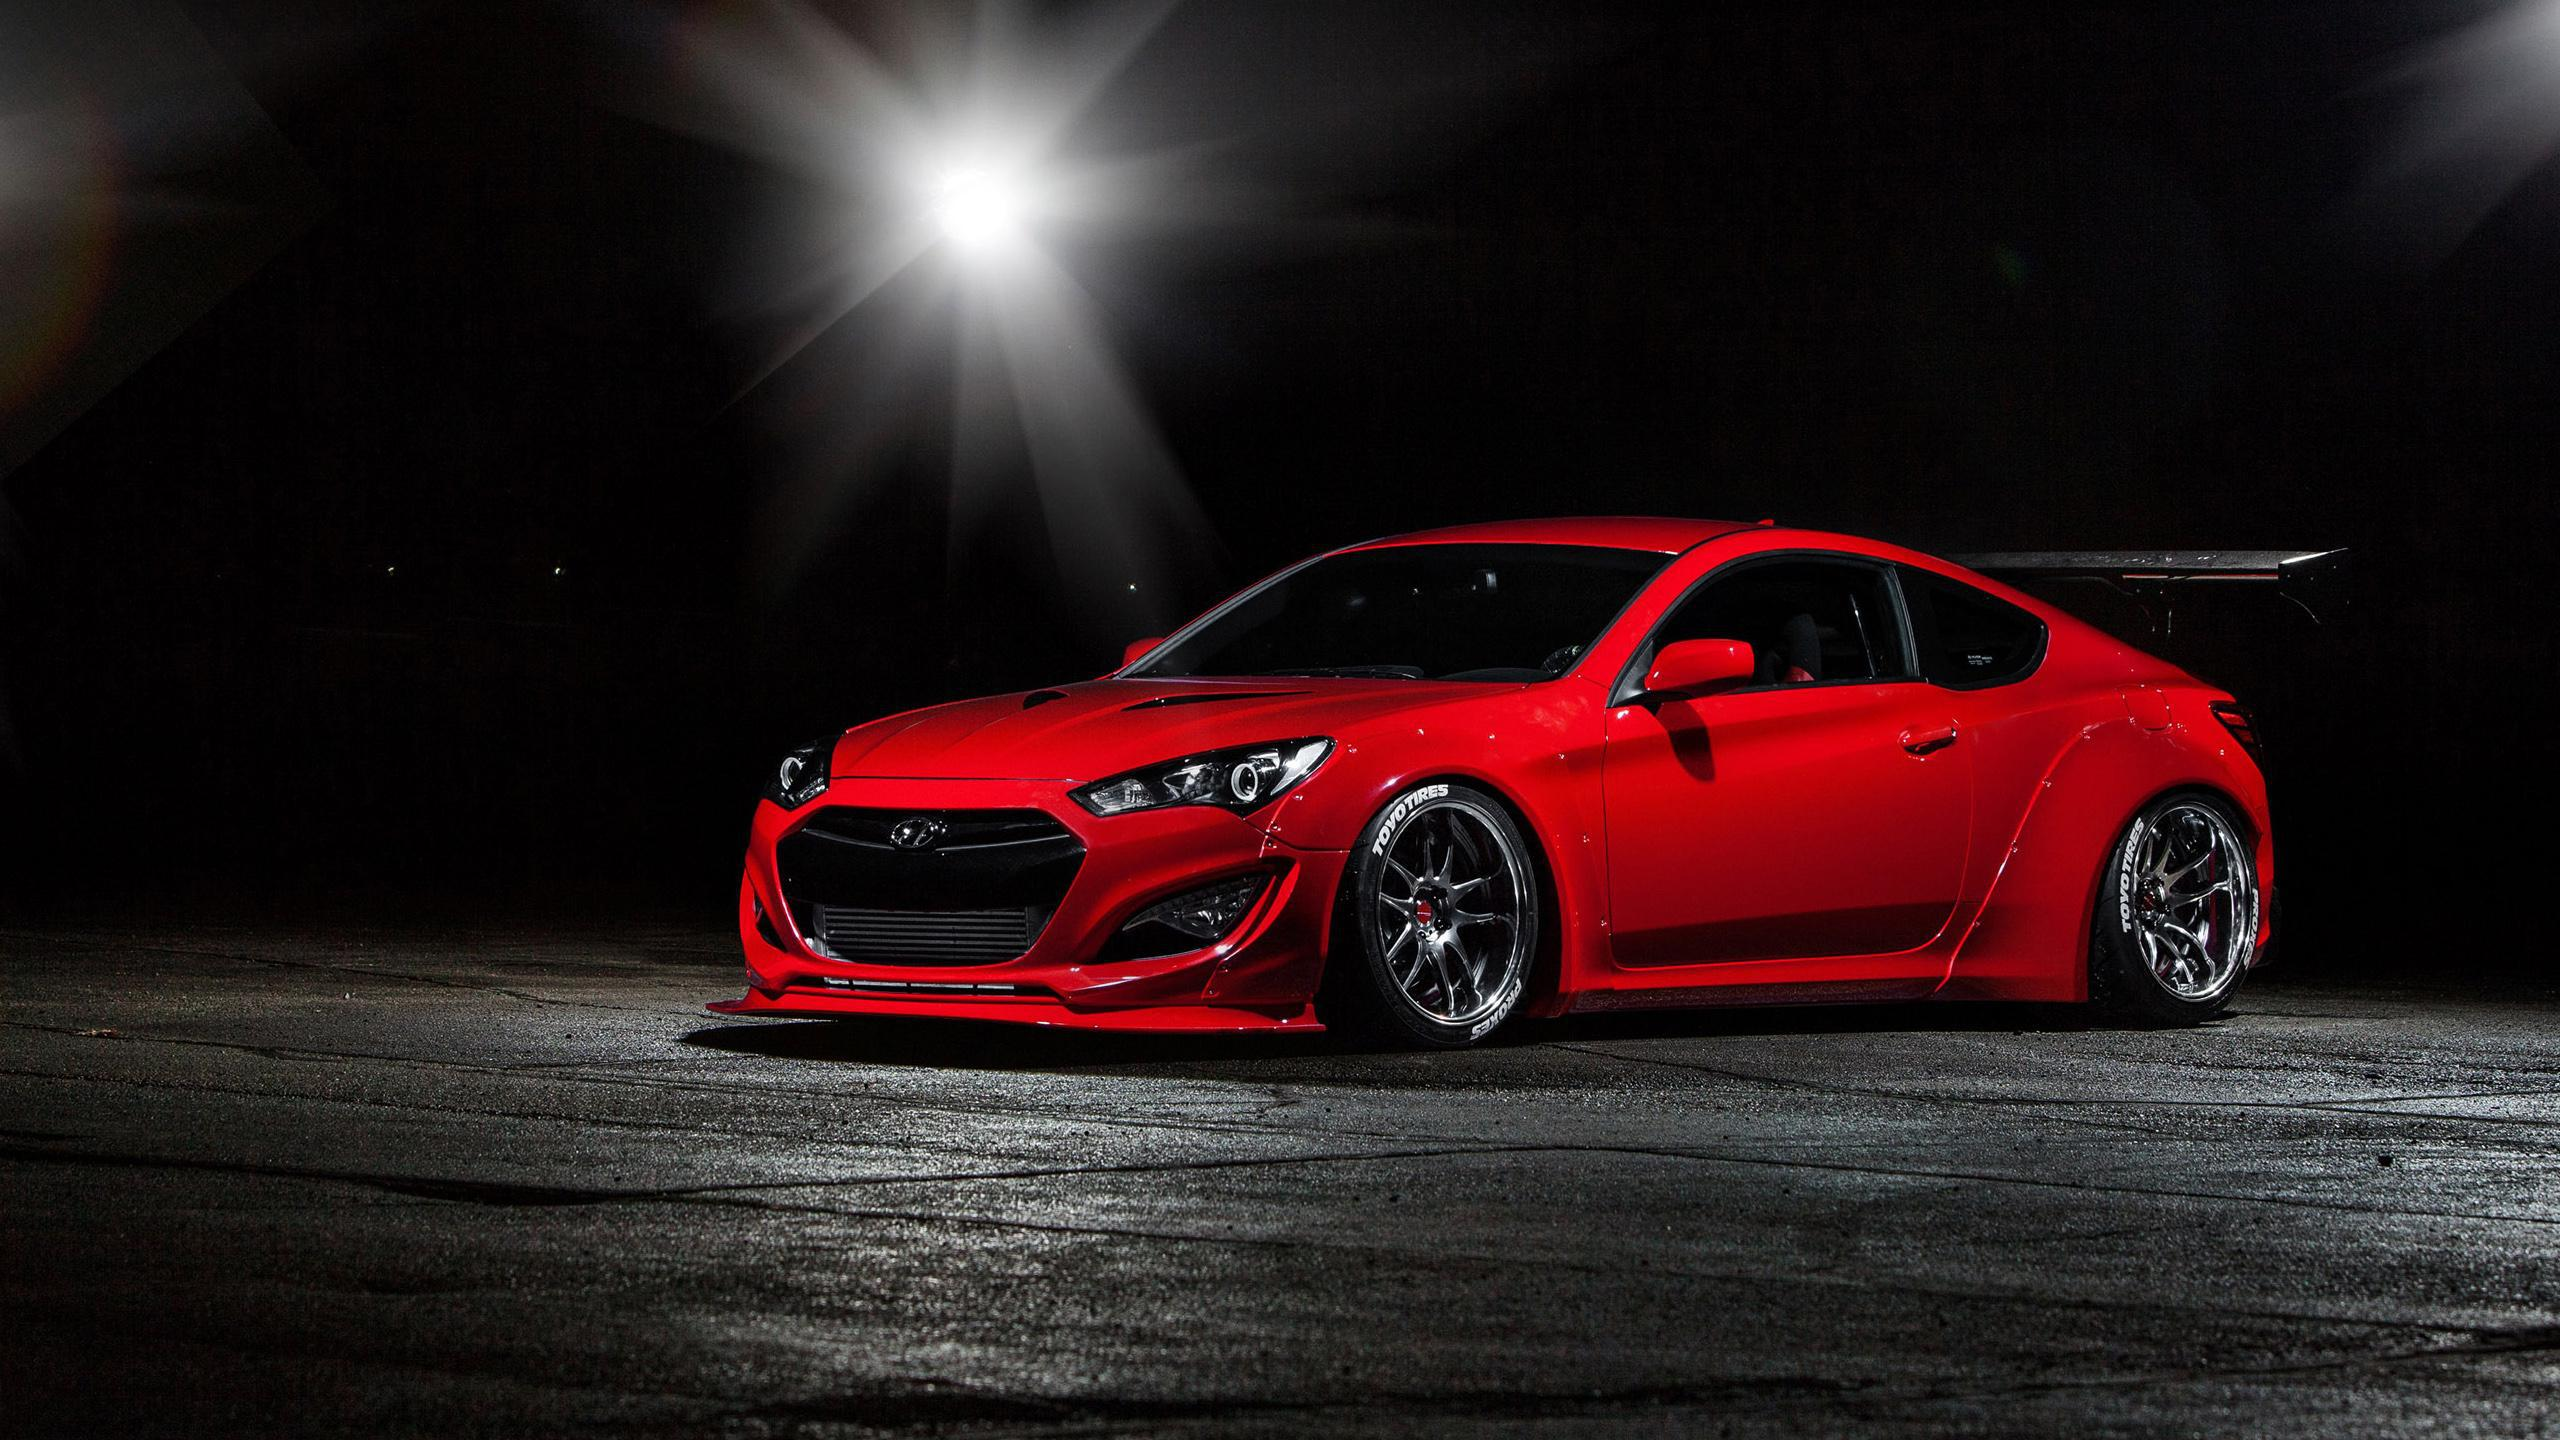 genesis coupe wallpaper - photo #12